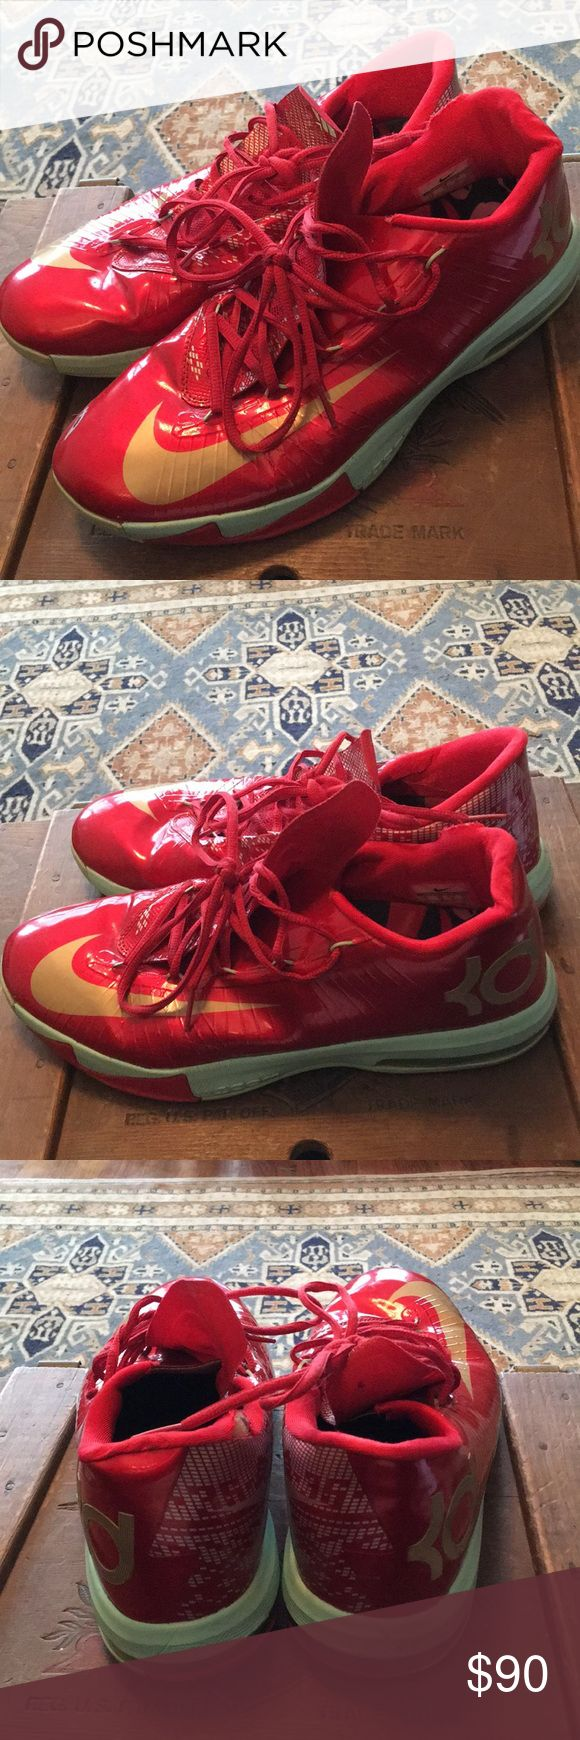 Nike KD Air Max Zoom Red Basketball Shoes Size 11 KD's in good used condition. They have a couple of minor flaws as shown but nothing a good cobbler can't reasonably repair or touch up. They are discounted as a result. Nike Shoes Athletic Shoes